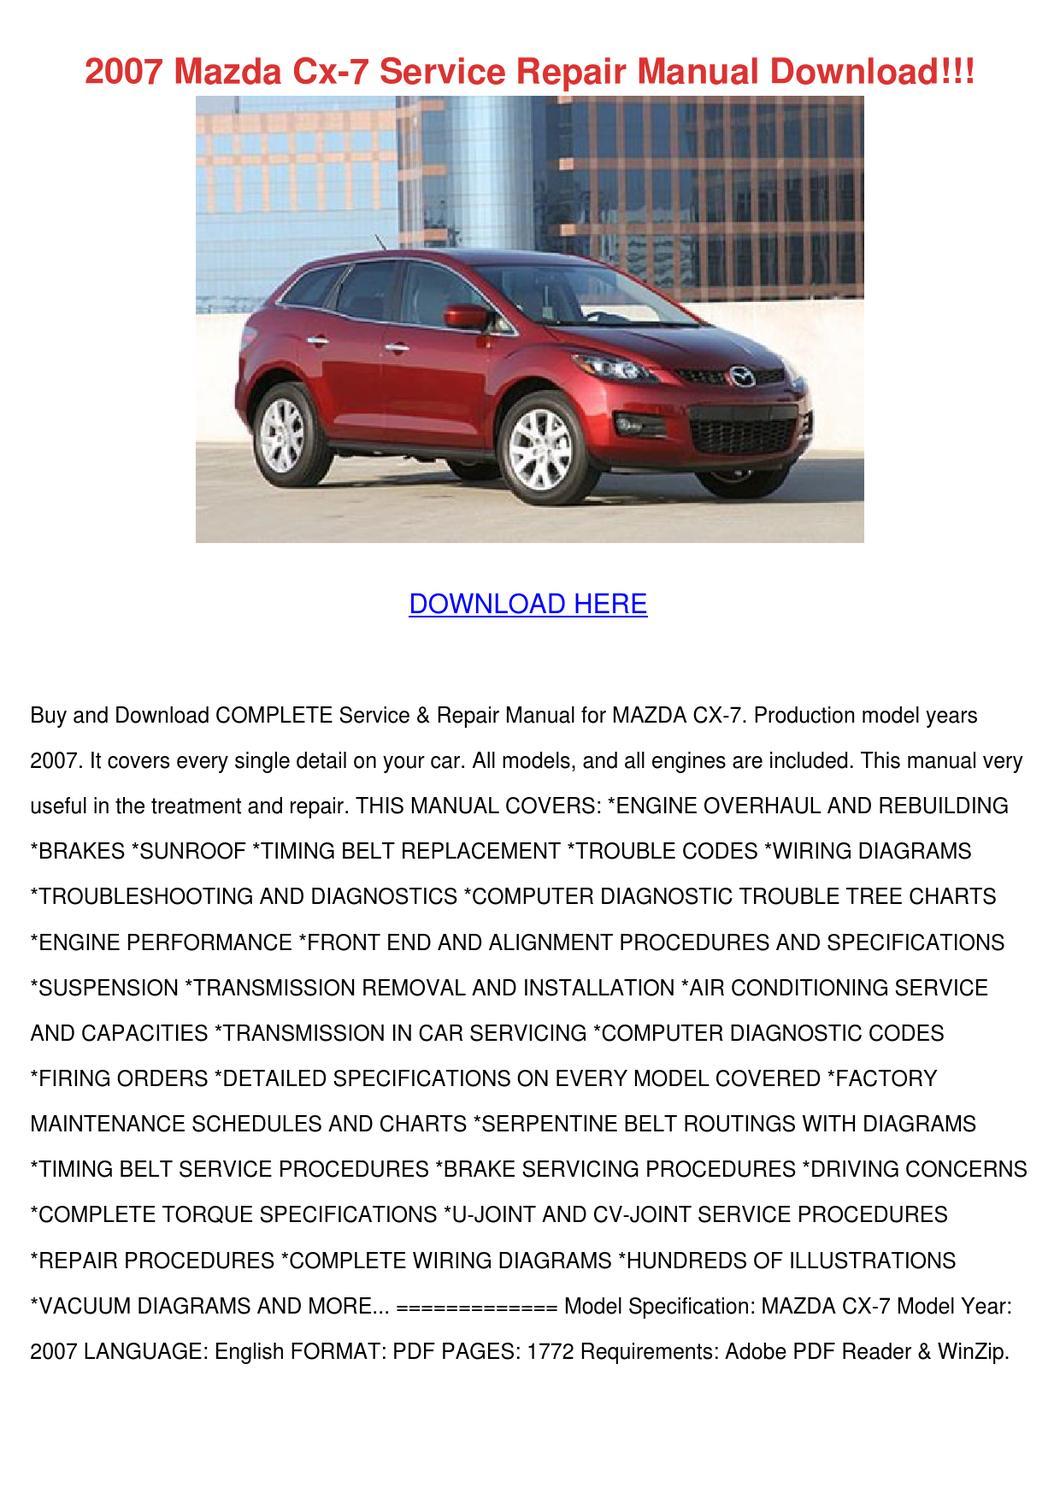 2007 mazda cx 7 service repair manual downloa